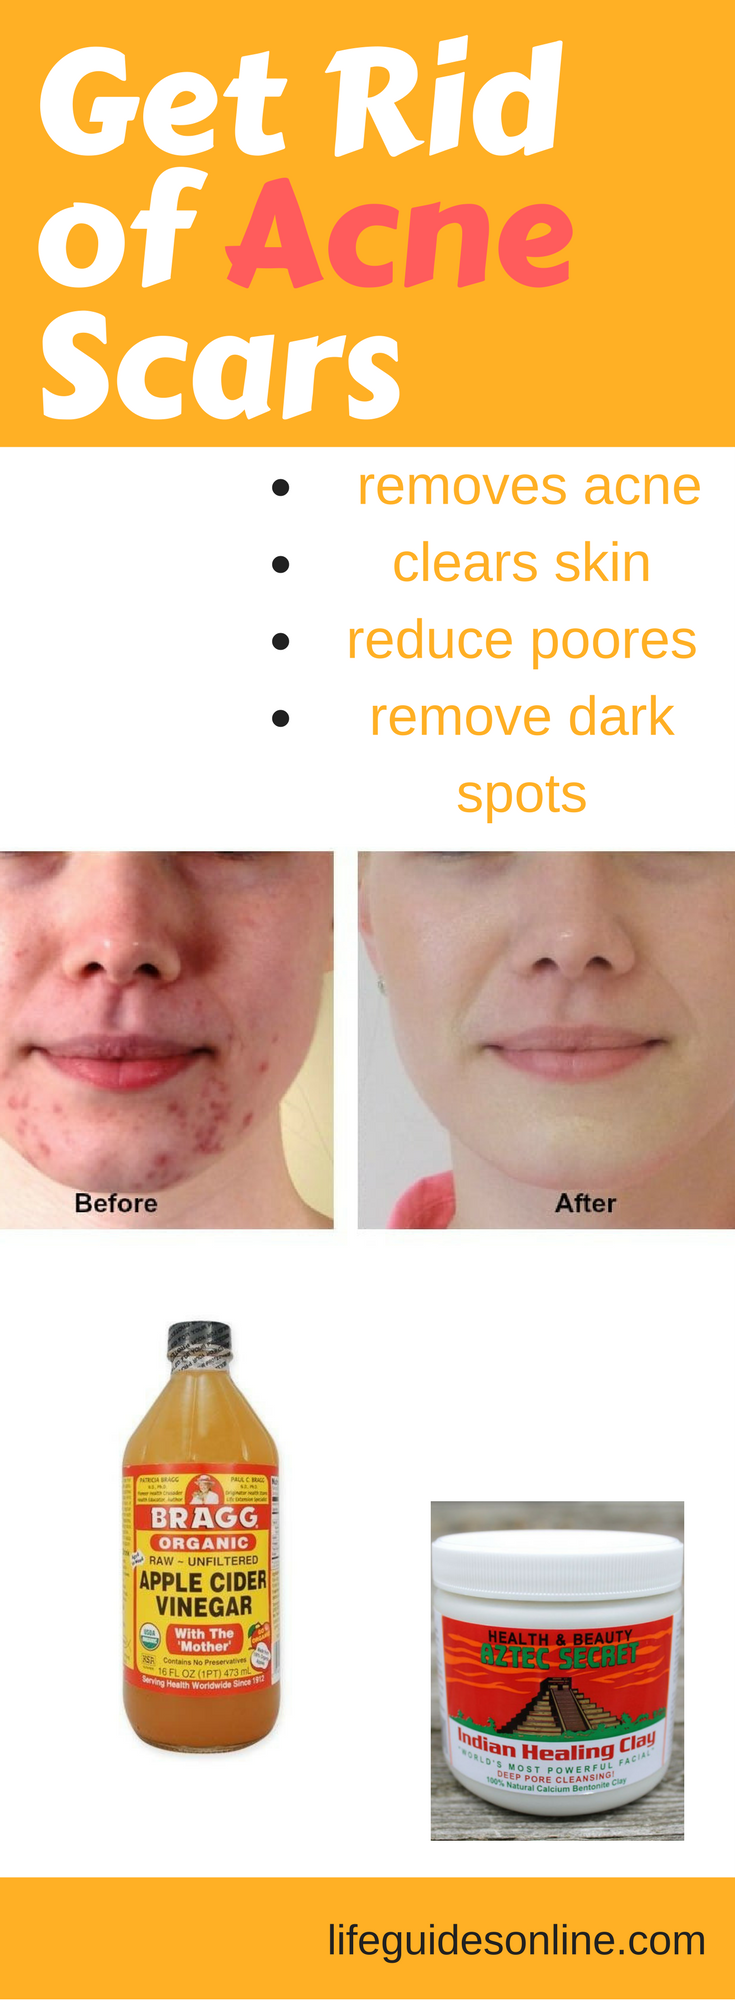 How to remove acne scars with apple cider vinegar How to remove acne scars with apple cider vinegar new pics